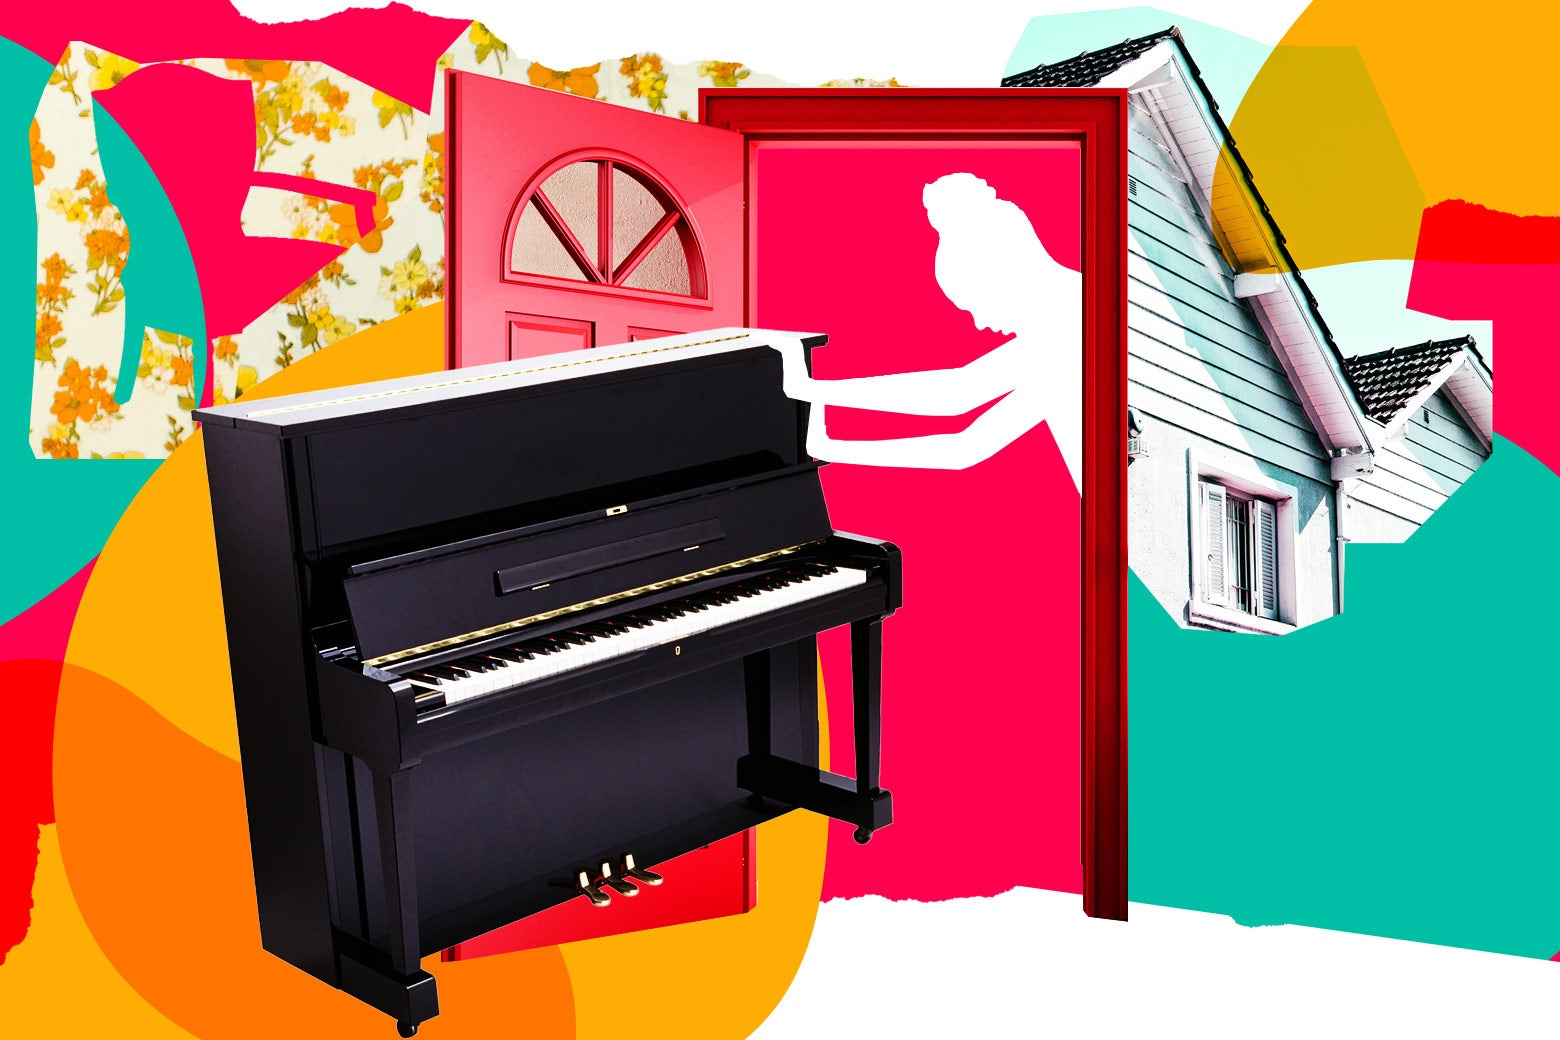 Collage of woman pushing a piano through a doorway.